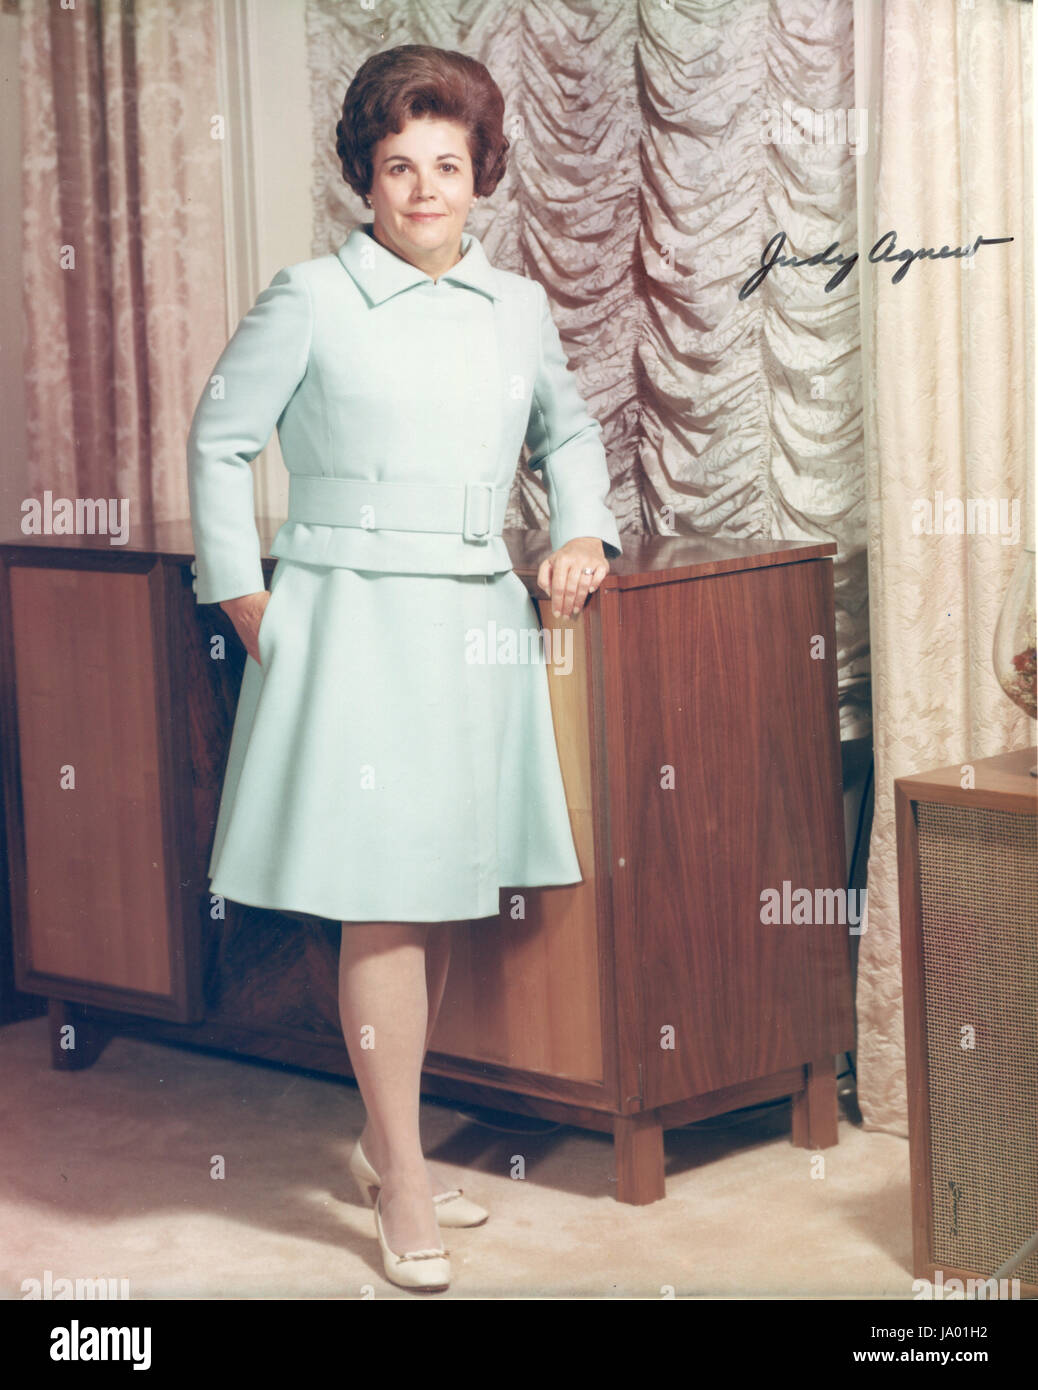 Judy (Mrs. Spiro) Agnew, wife of the Vice-President of the United States, Washington, DC, 01/ 1969. - Stock Image